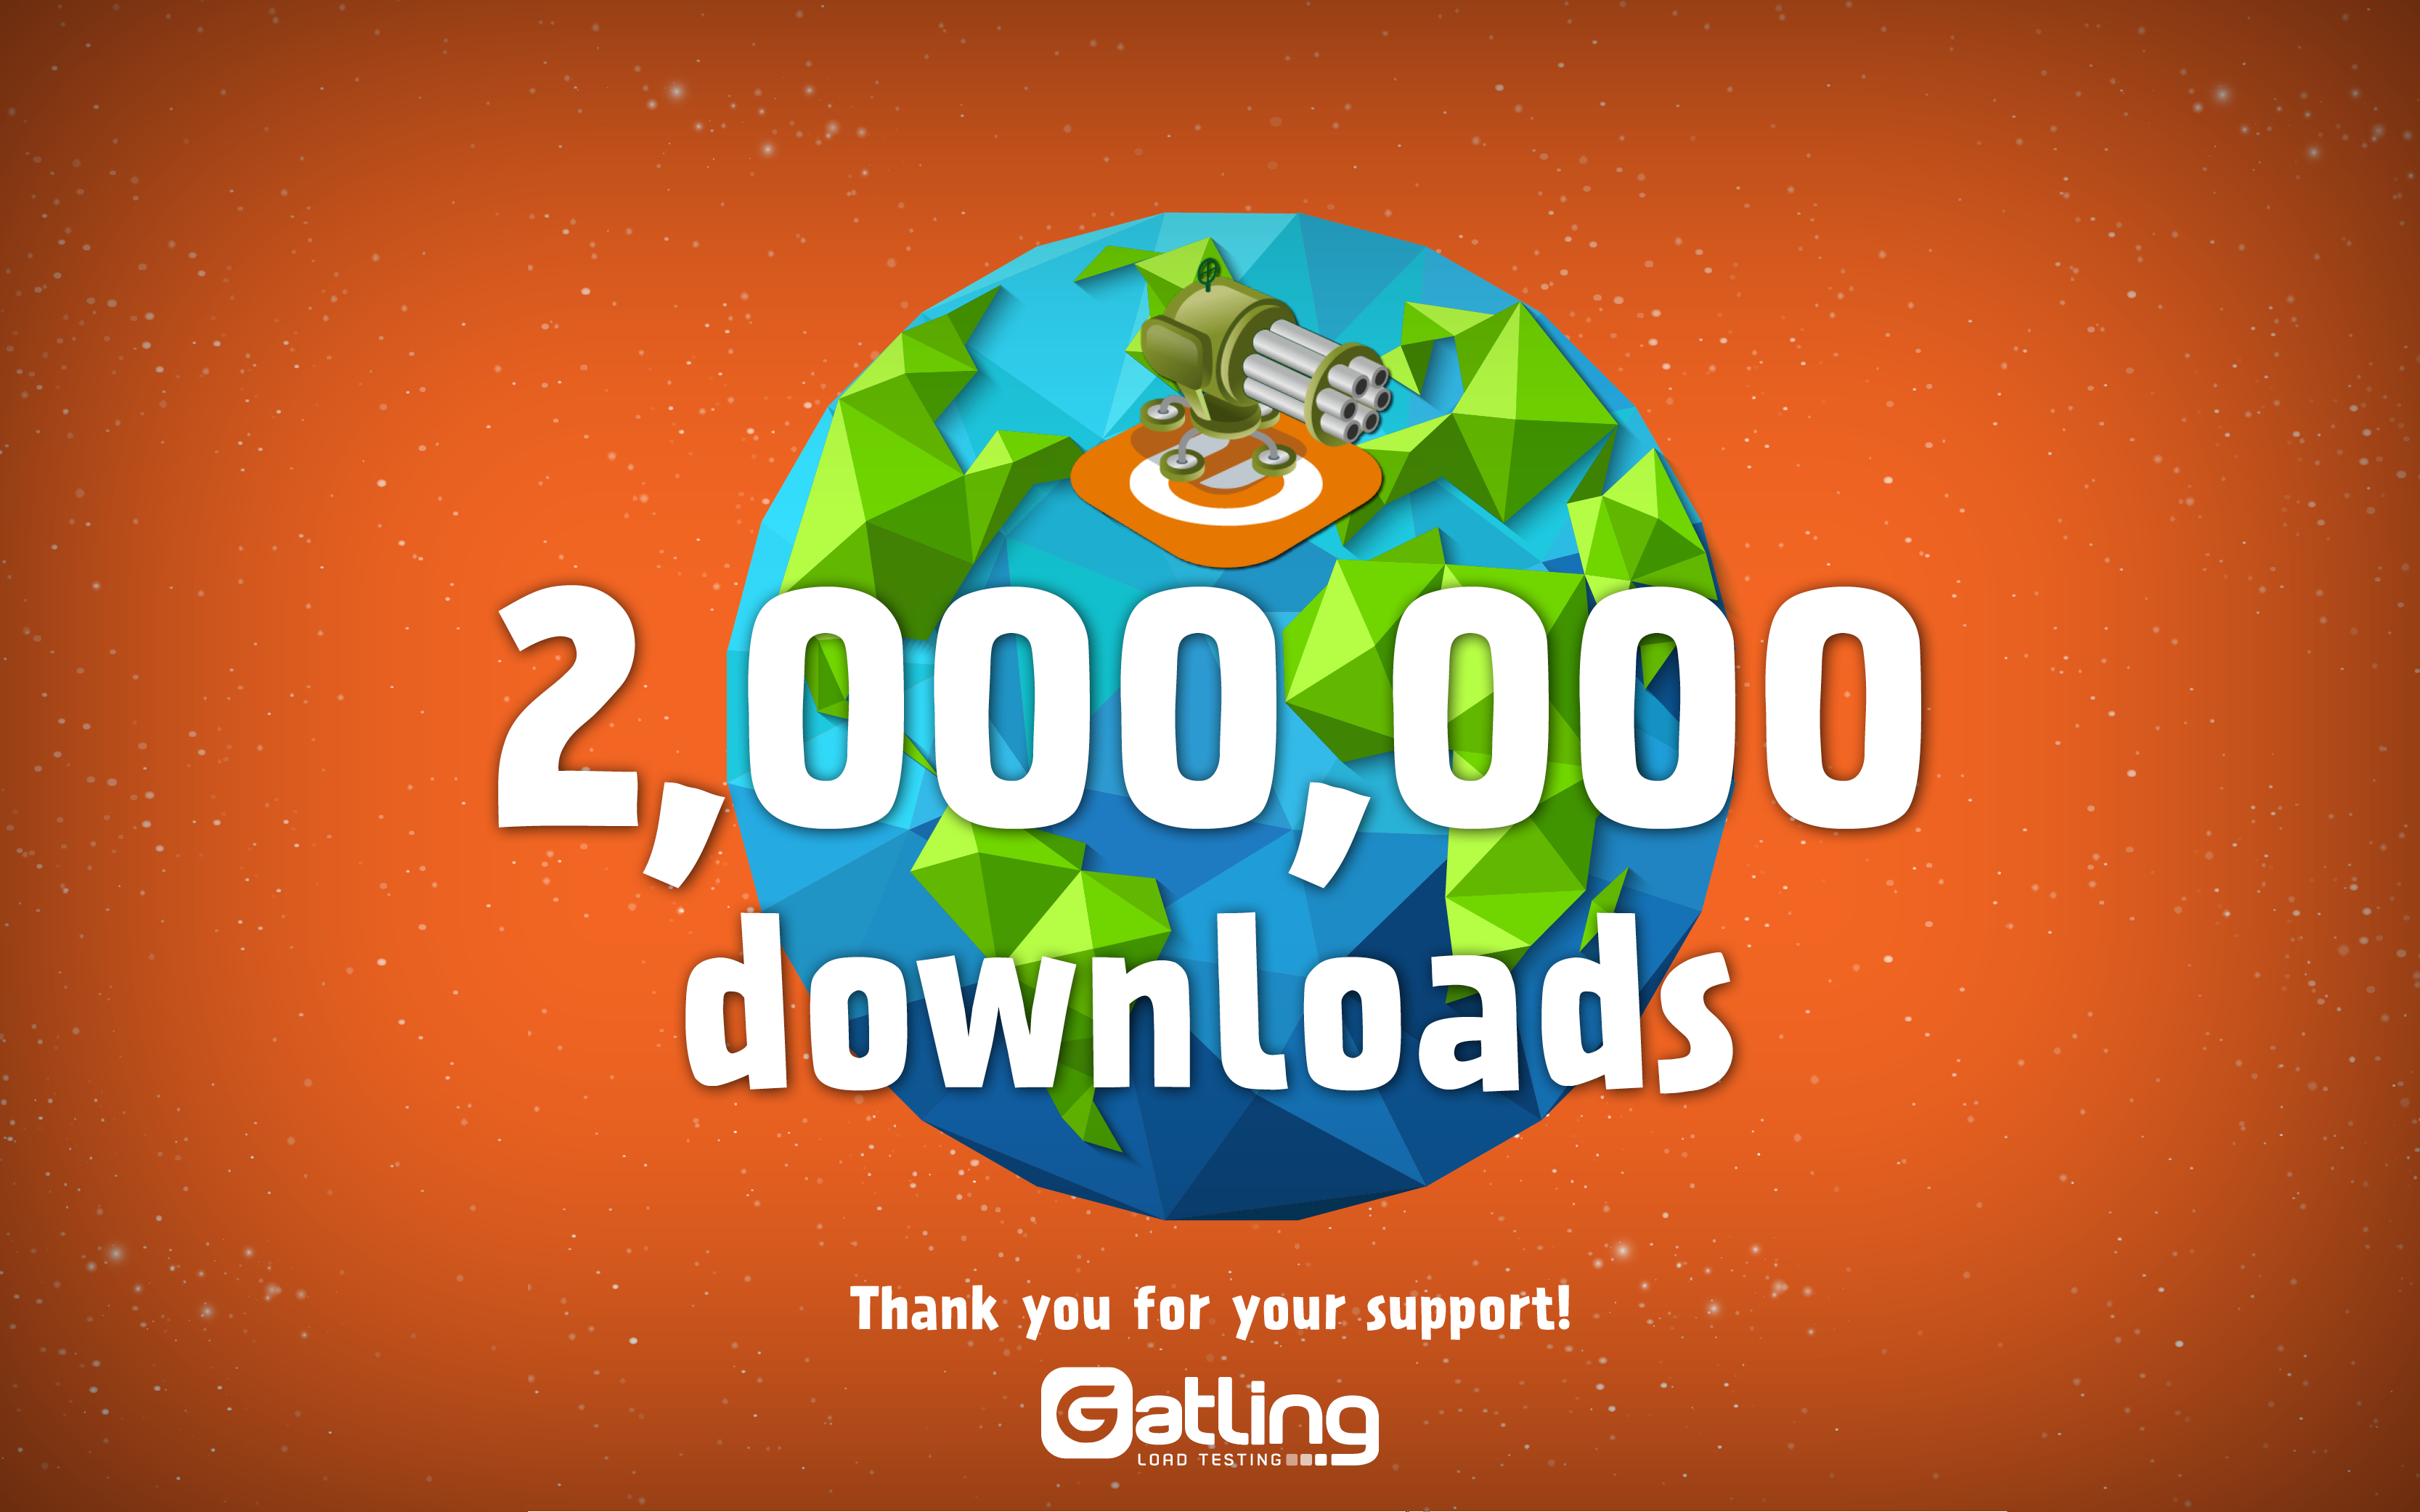 gatling open source was downloaded 2 million times